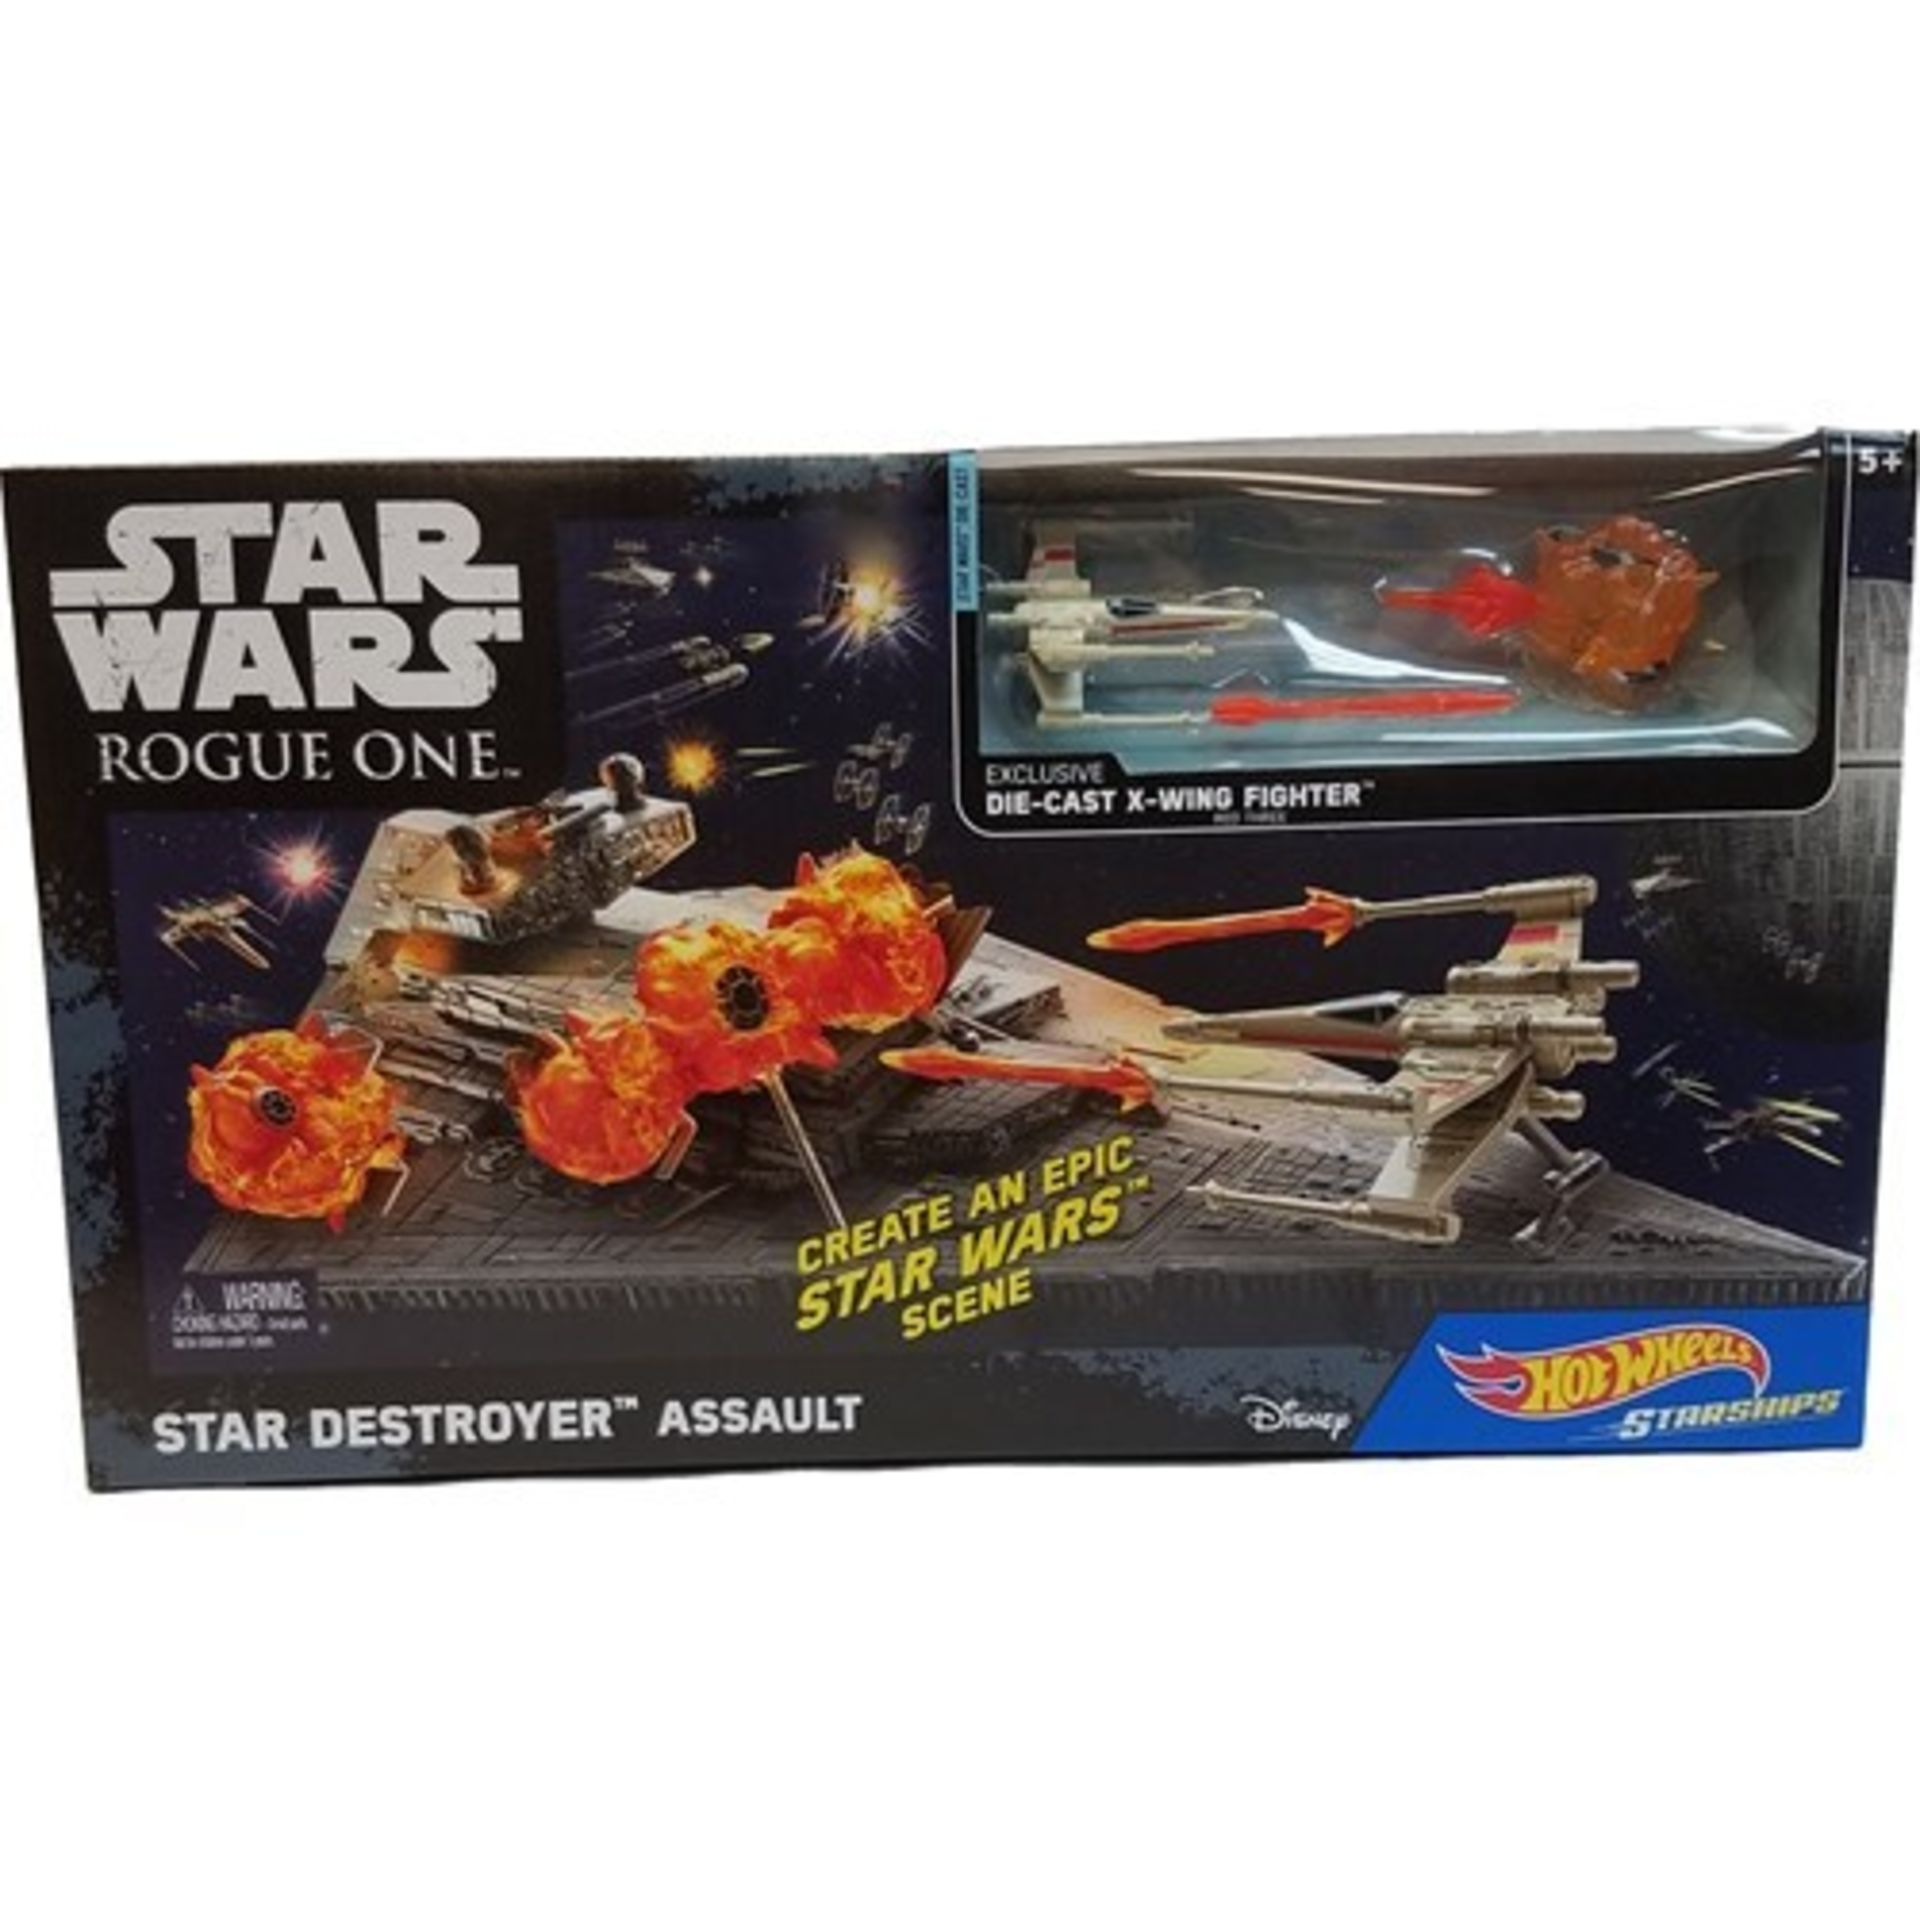 Lot 12587 - V Brand New Hot Wheels Star Wars Rogue One Star Destroyer Assault - 20 Pieces Included - Includes